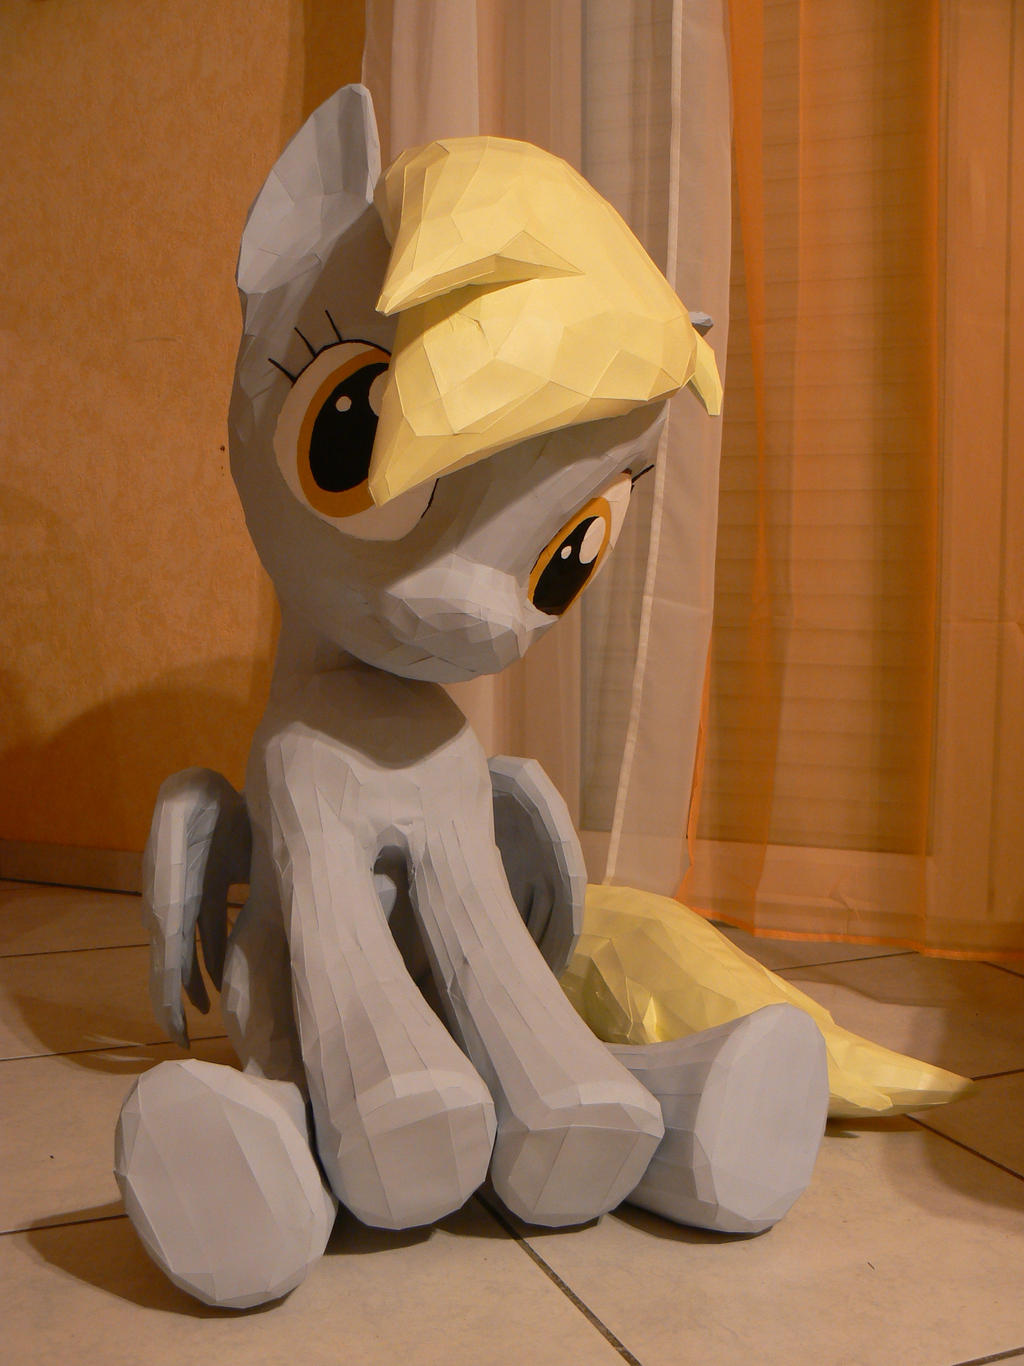 Derpy Hooves Papercraft - Queen of muffins by Znegil